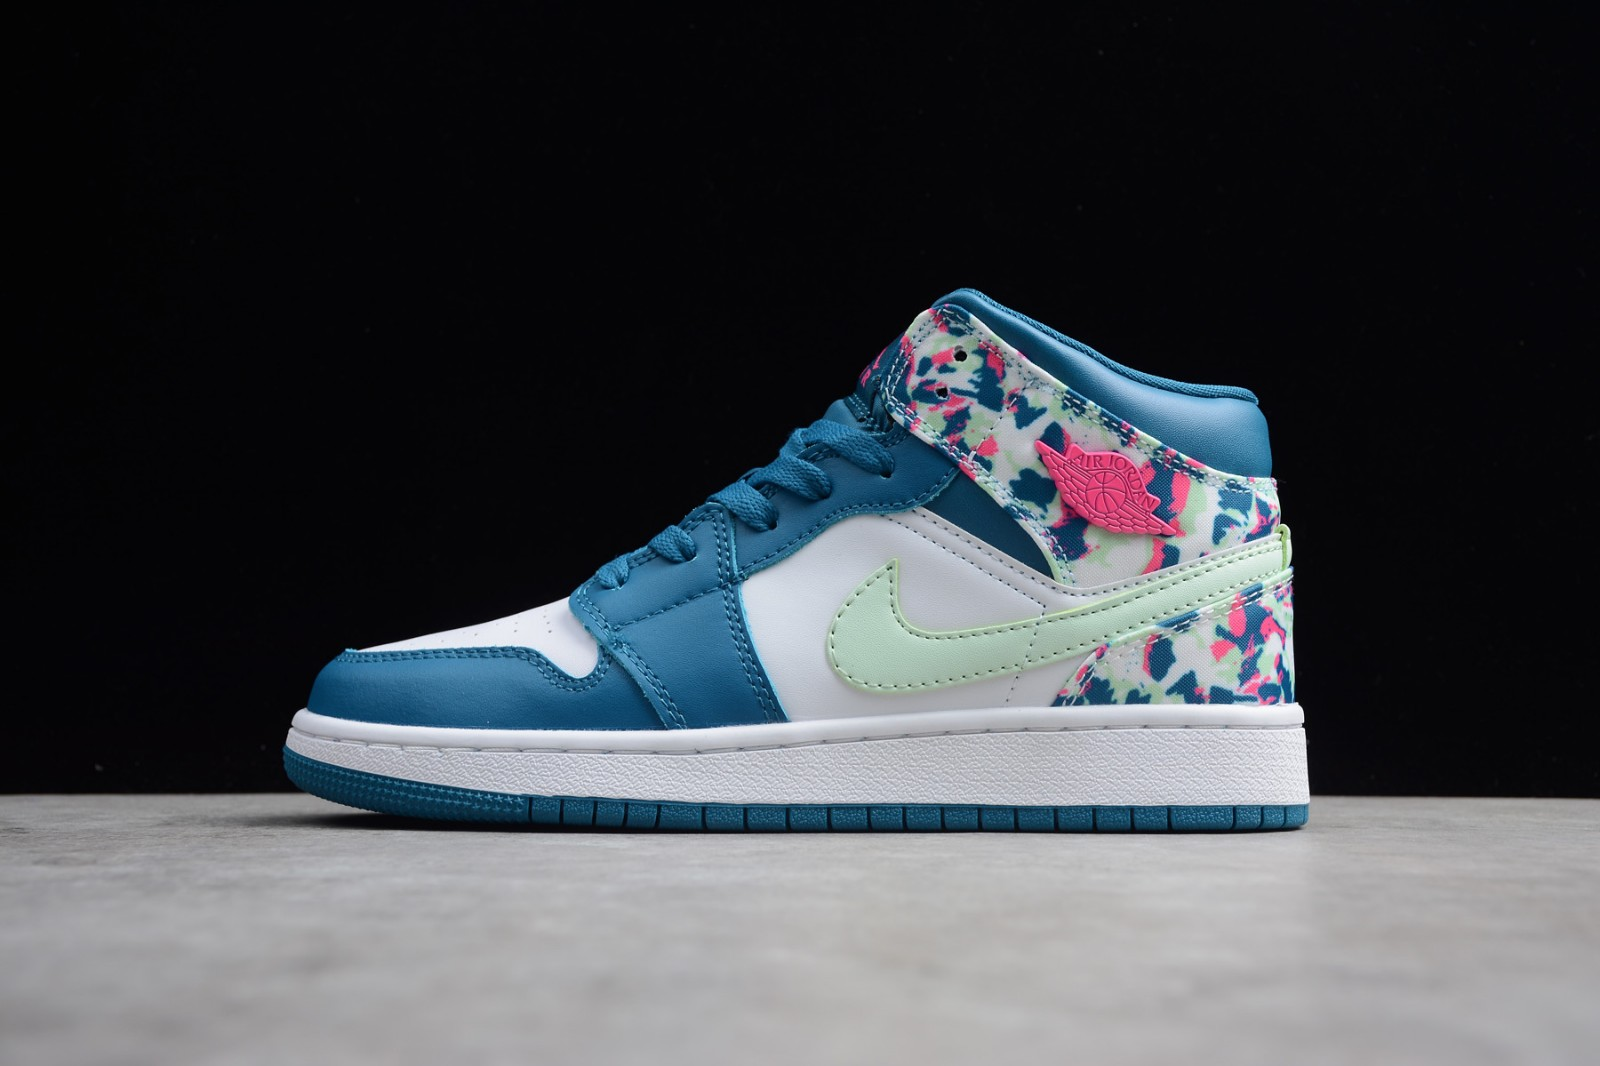 d144053af958 Nike Air Jordan 1 Mid GS White Blue Pink Green 555112-300 - Sepsport